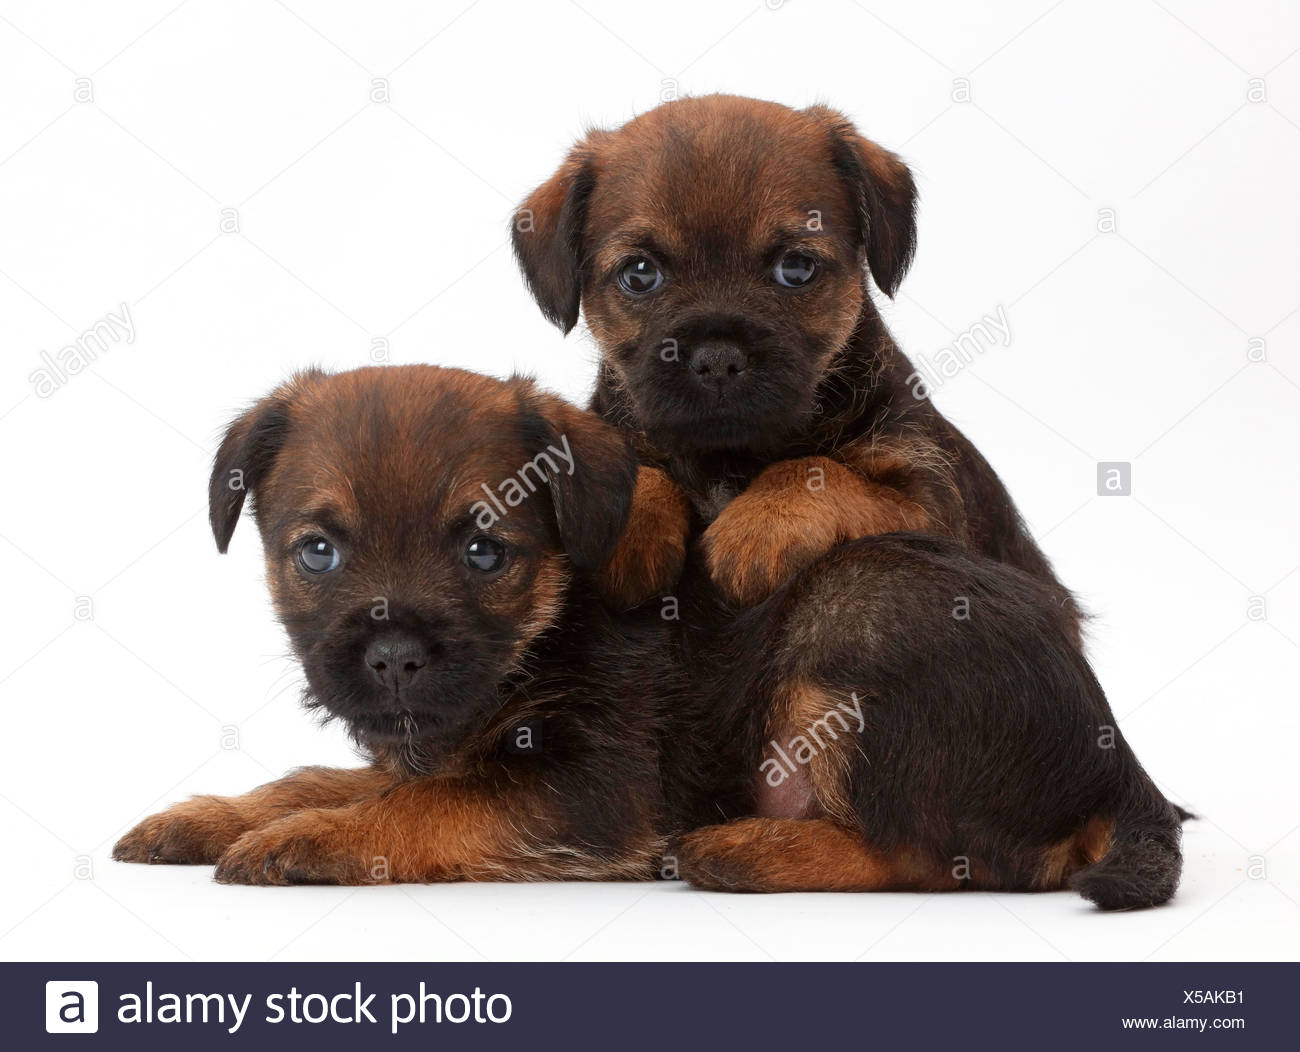 Border Terrier Puppies Stock Photos  | Border Terrier Puppies For Sale Cape Town